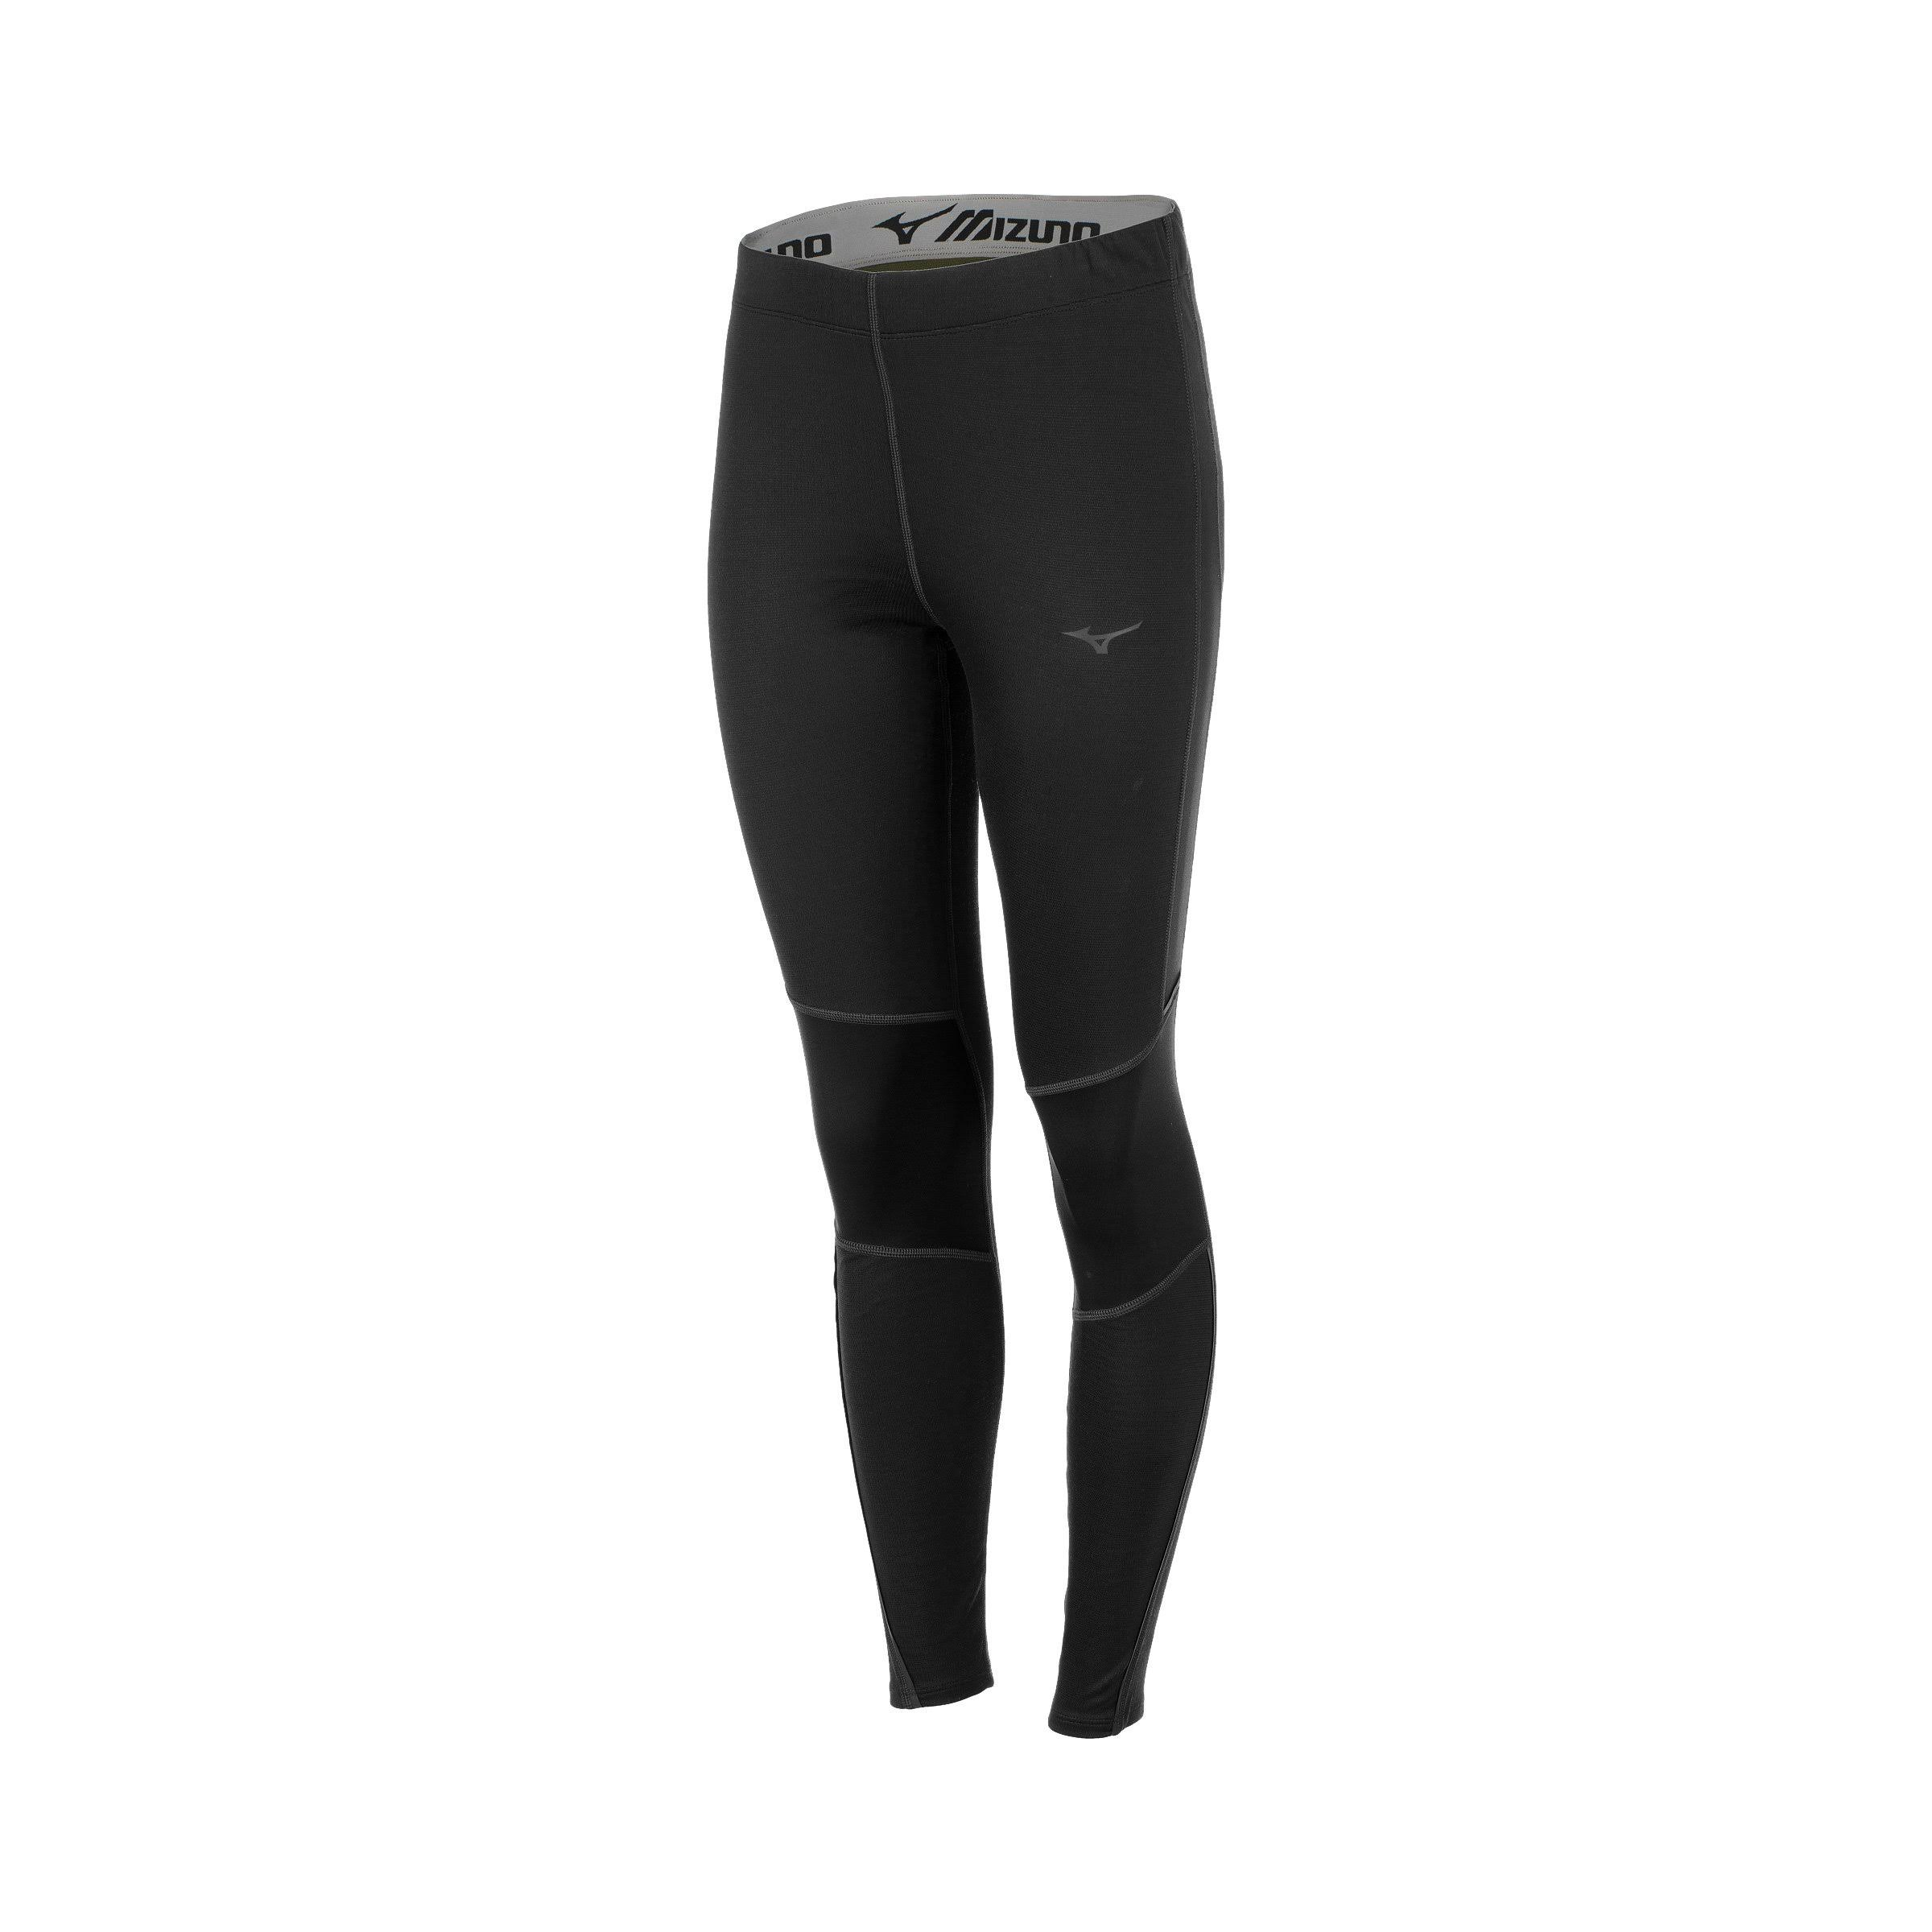 Mizuno - Women's Breath Thermo Tights, Black, Size Large